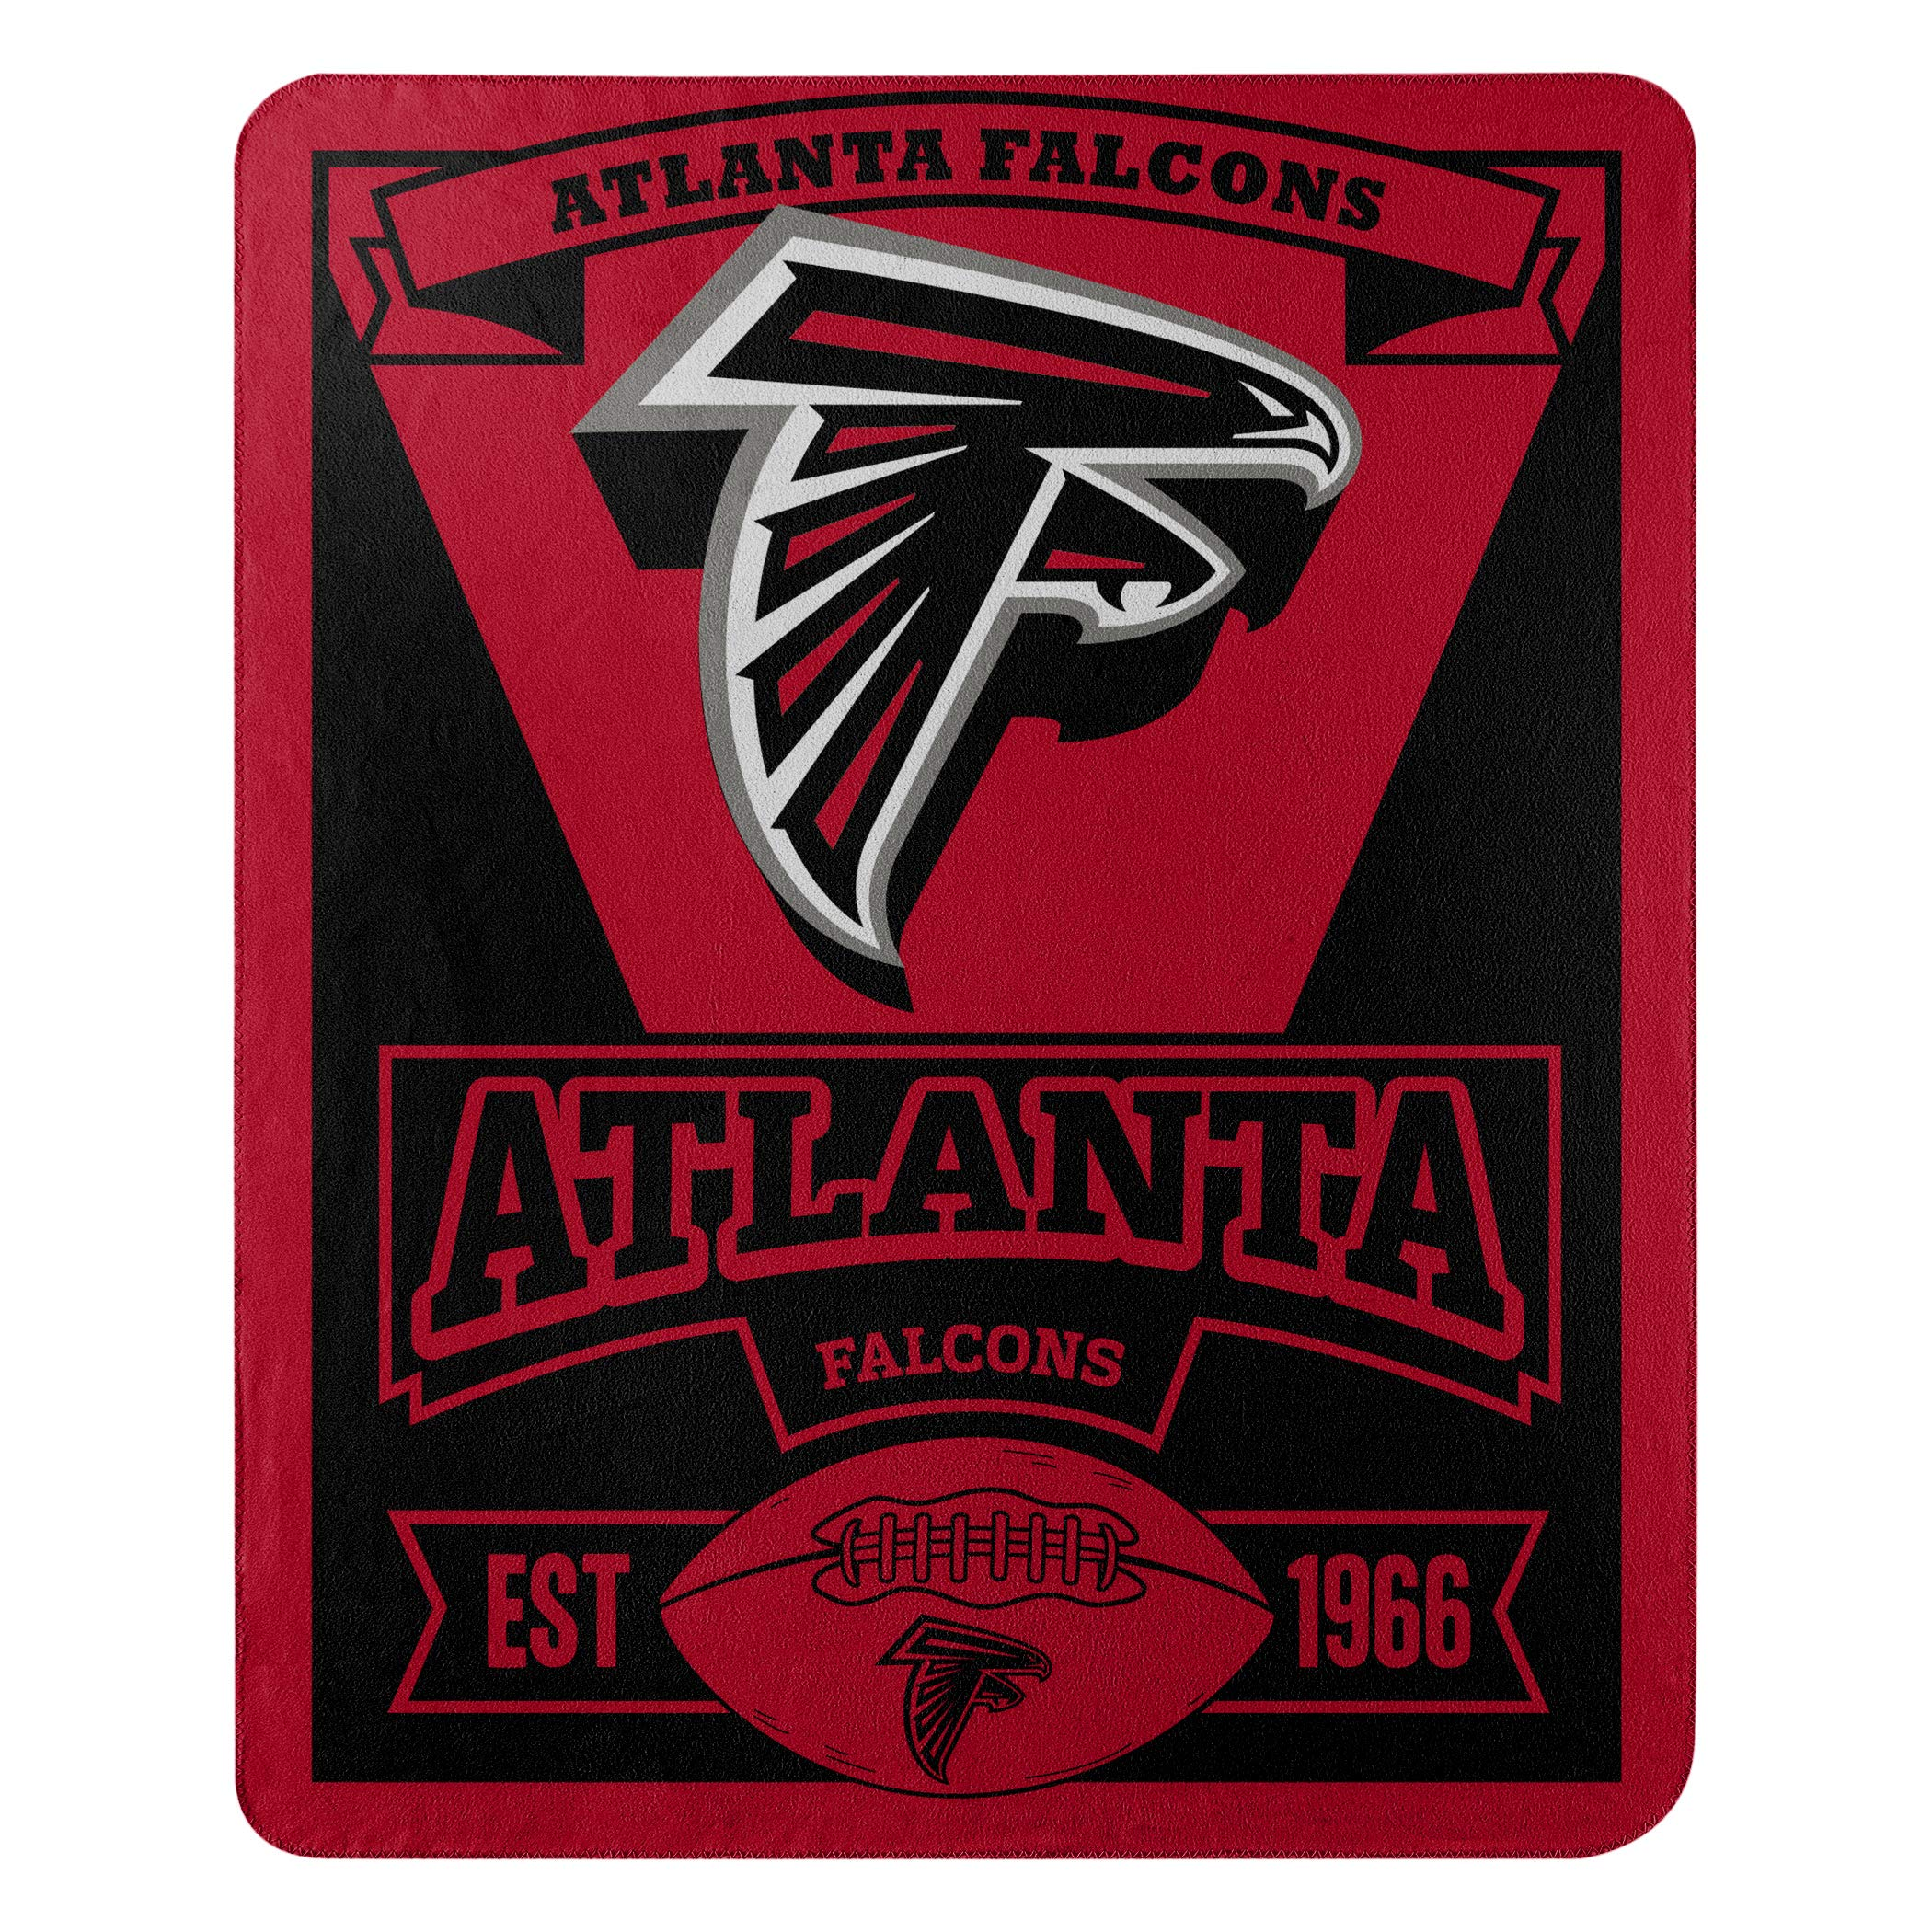 The Northwest Company Officially Licensed NFL Atlanta Falcons Marque Printed Fleece Throw Blanket, 50'' x 60'', Multi Color by The Northwest Company